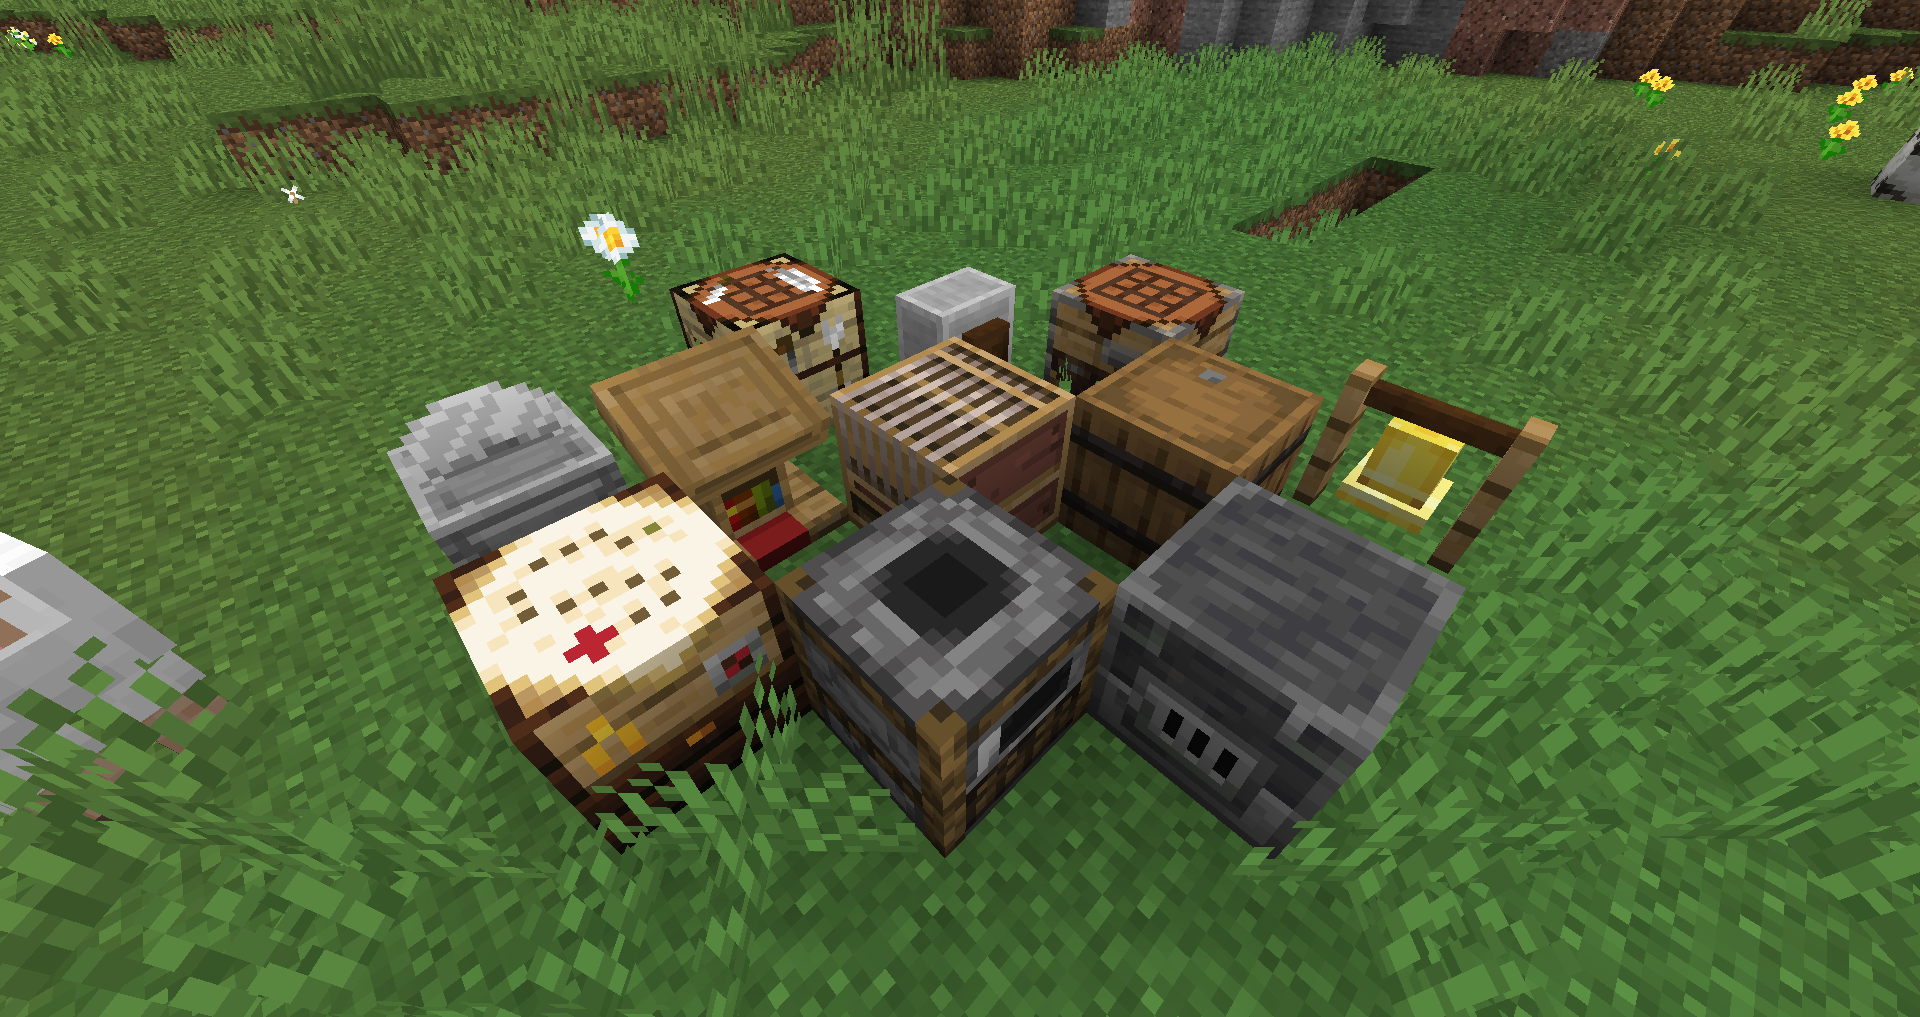 Minecraft Bedrock 1 9 brings more blocks, flowers, and experiments